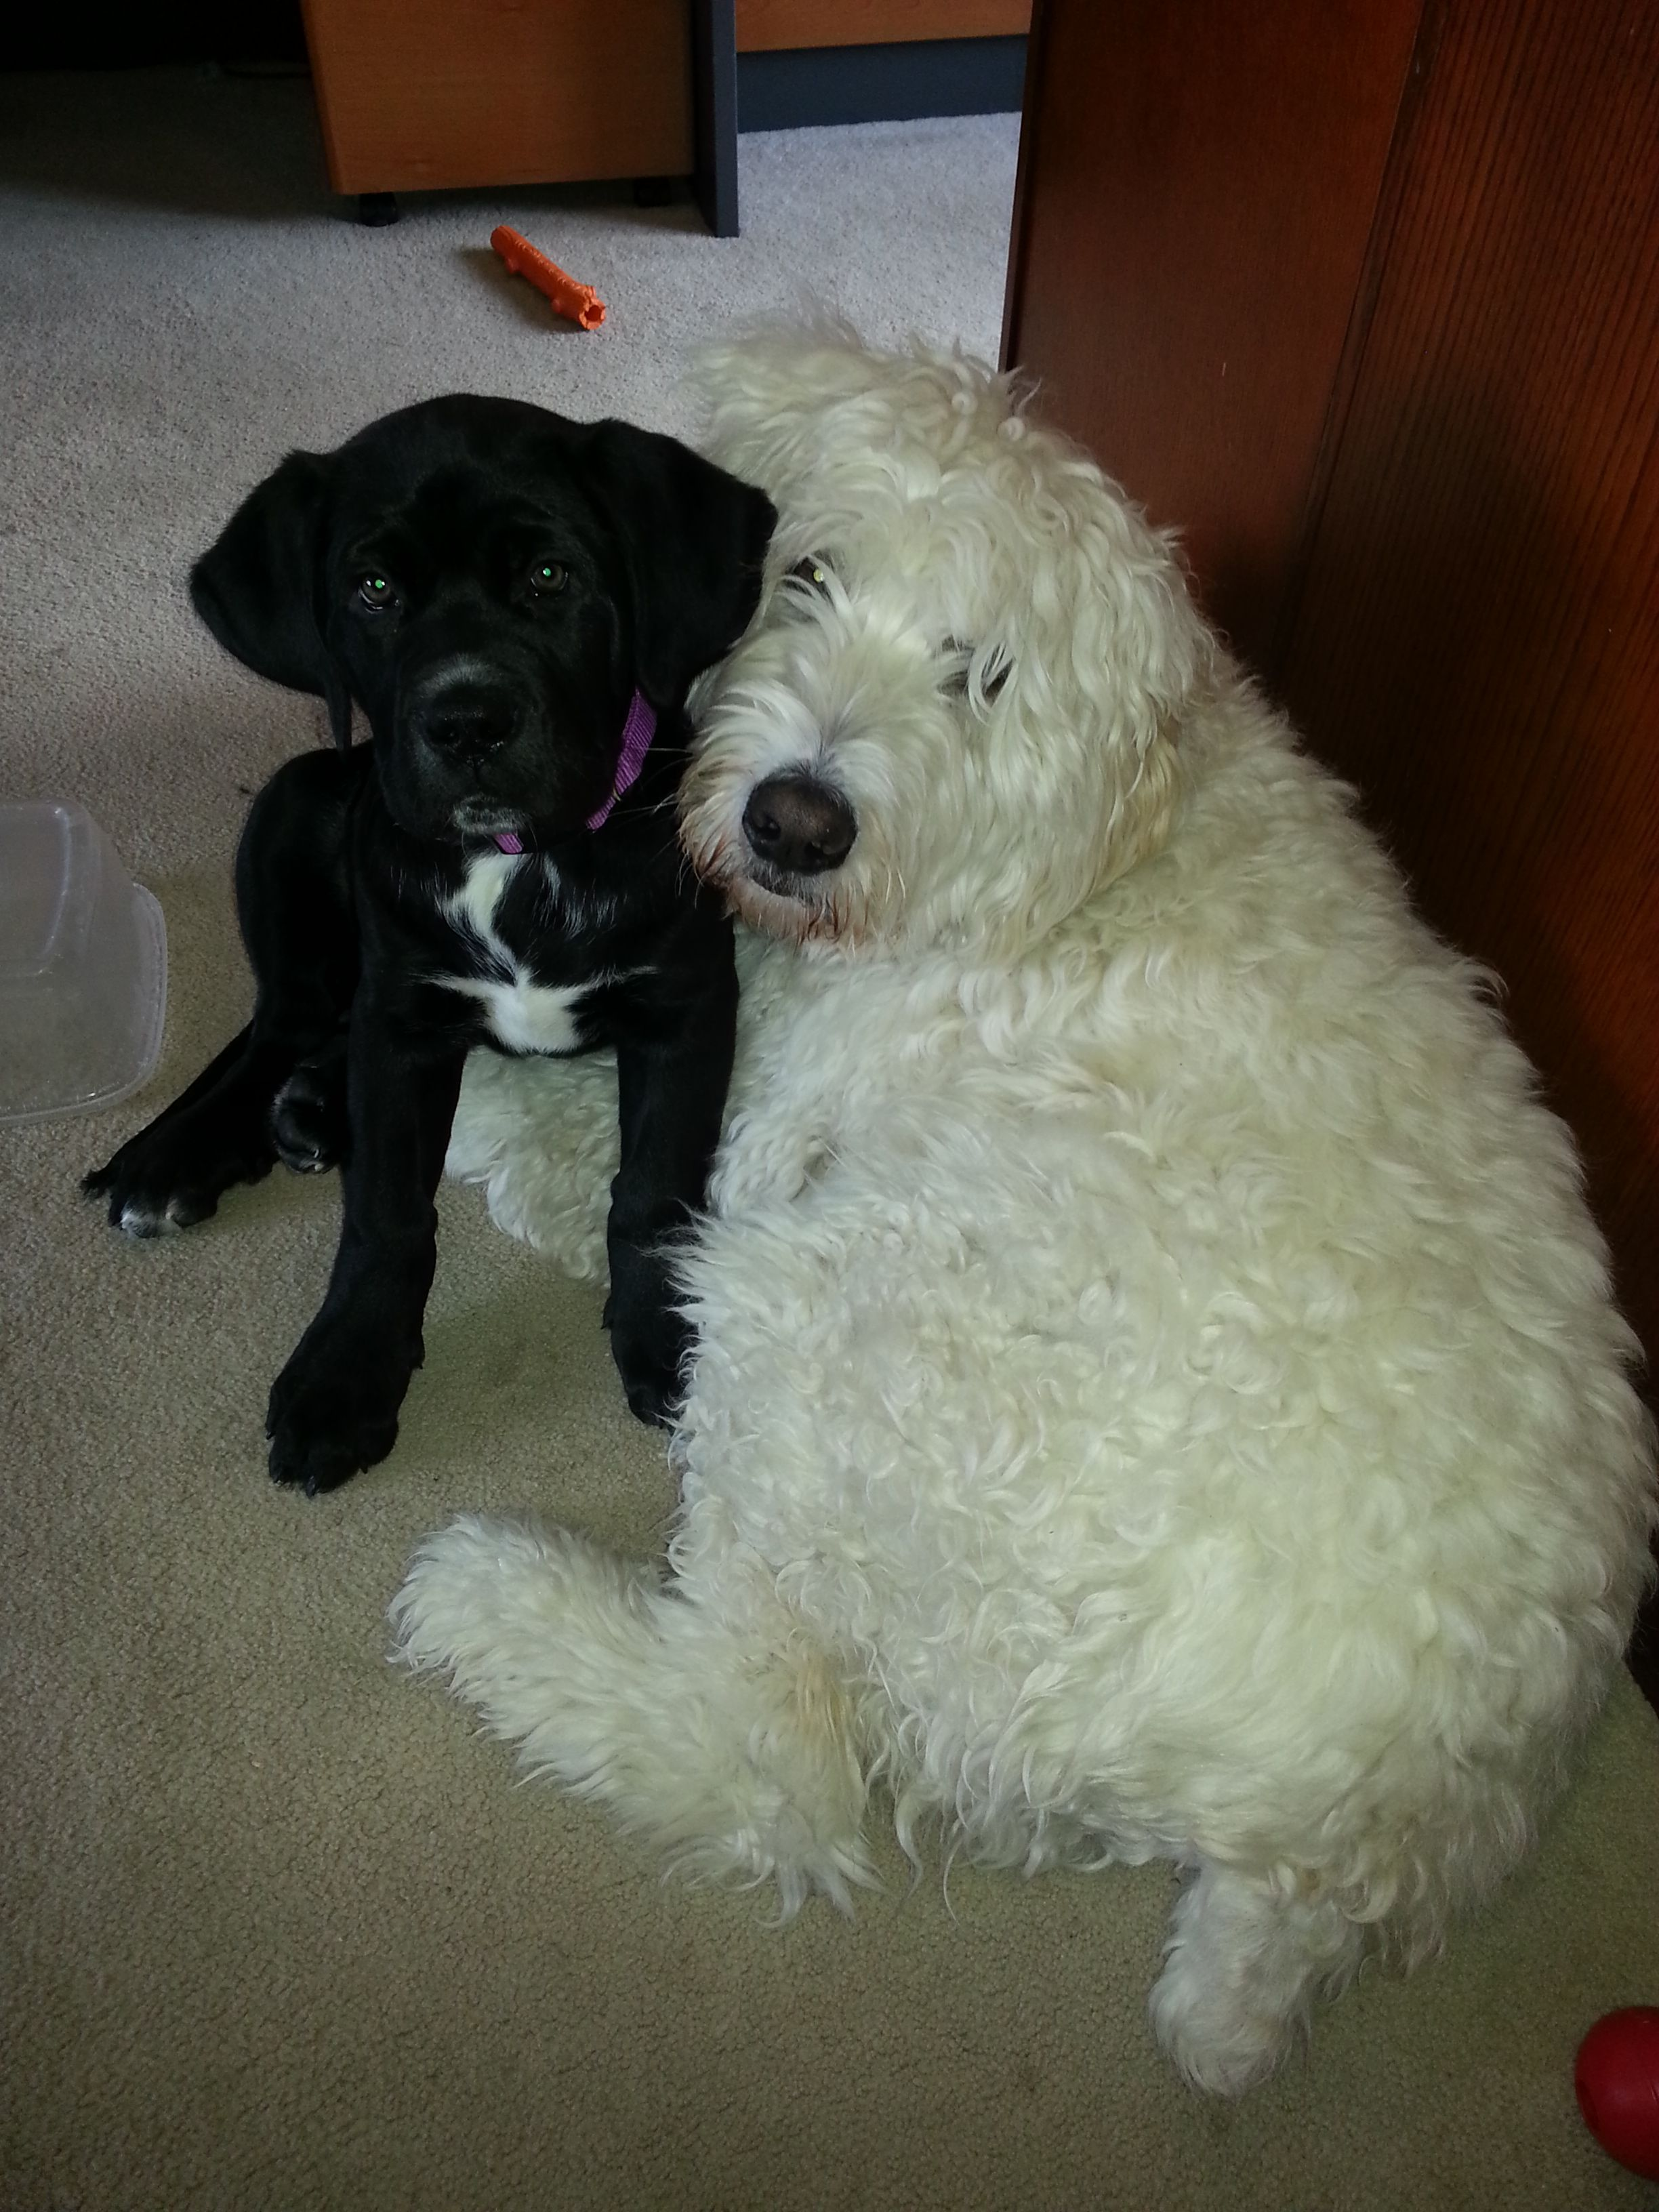 Helga Cane Corso 2 Months And Bear Golden Doodle Best Of Friends